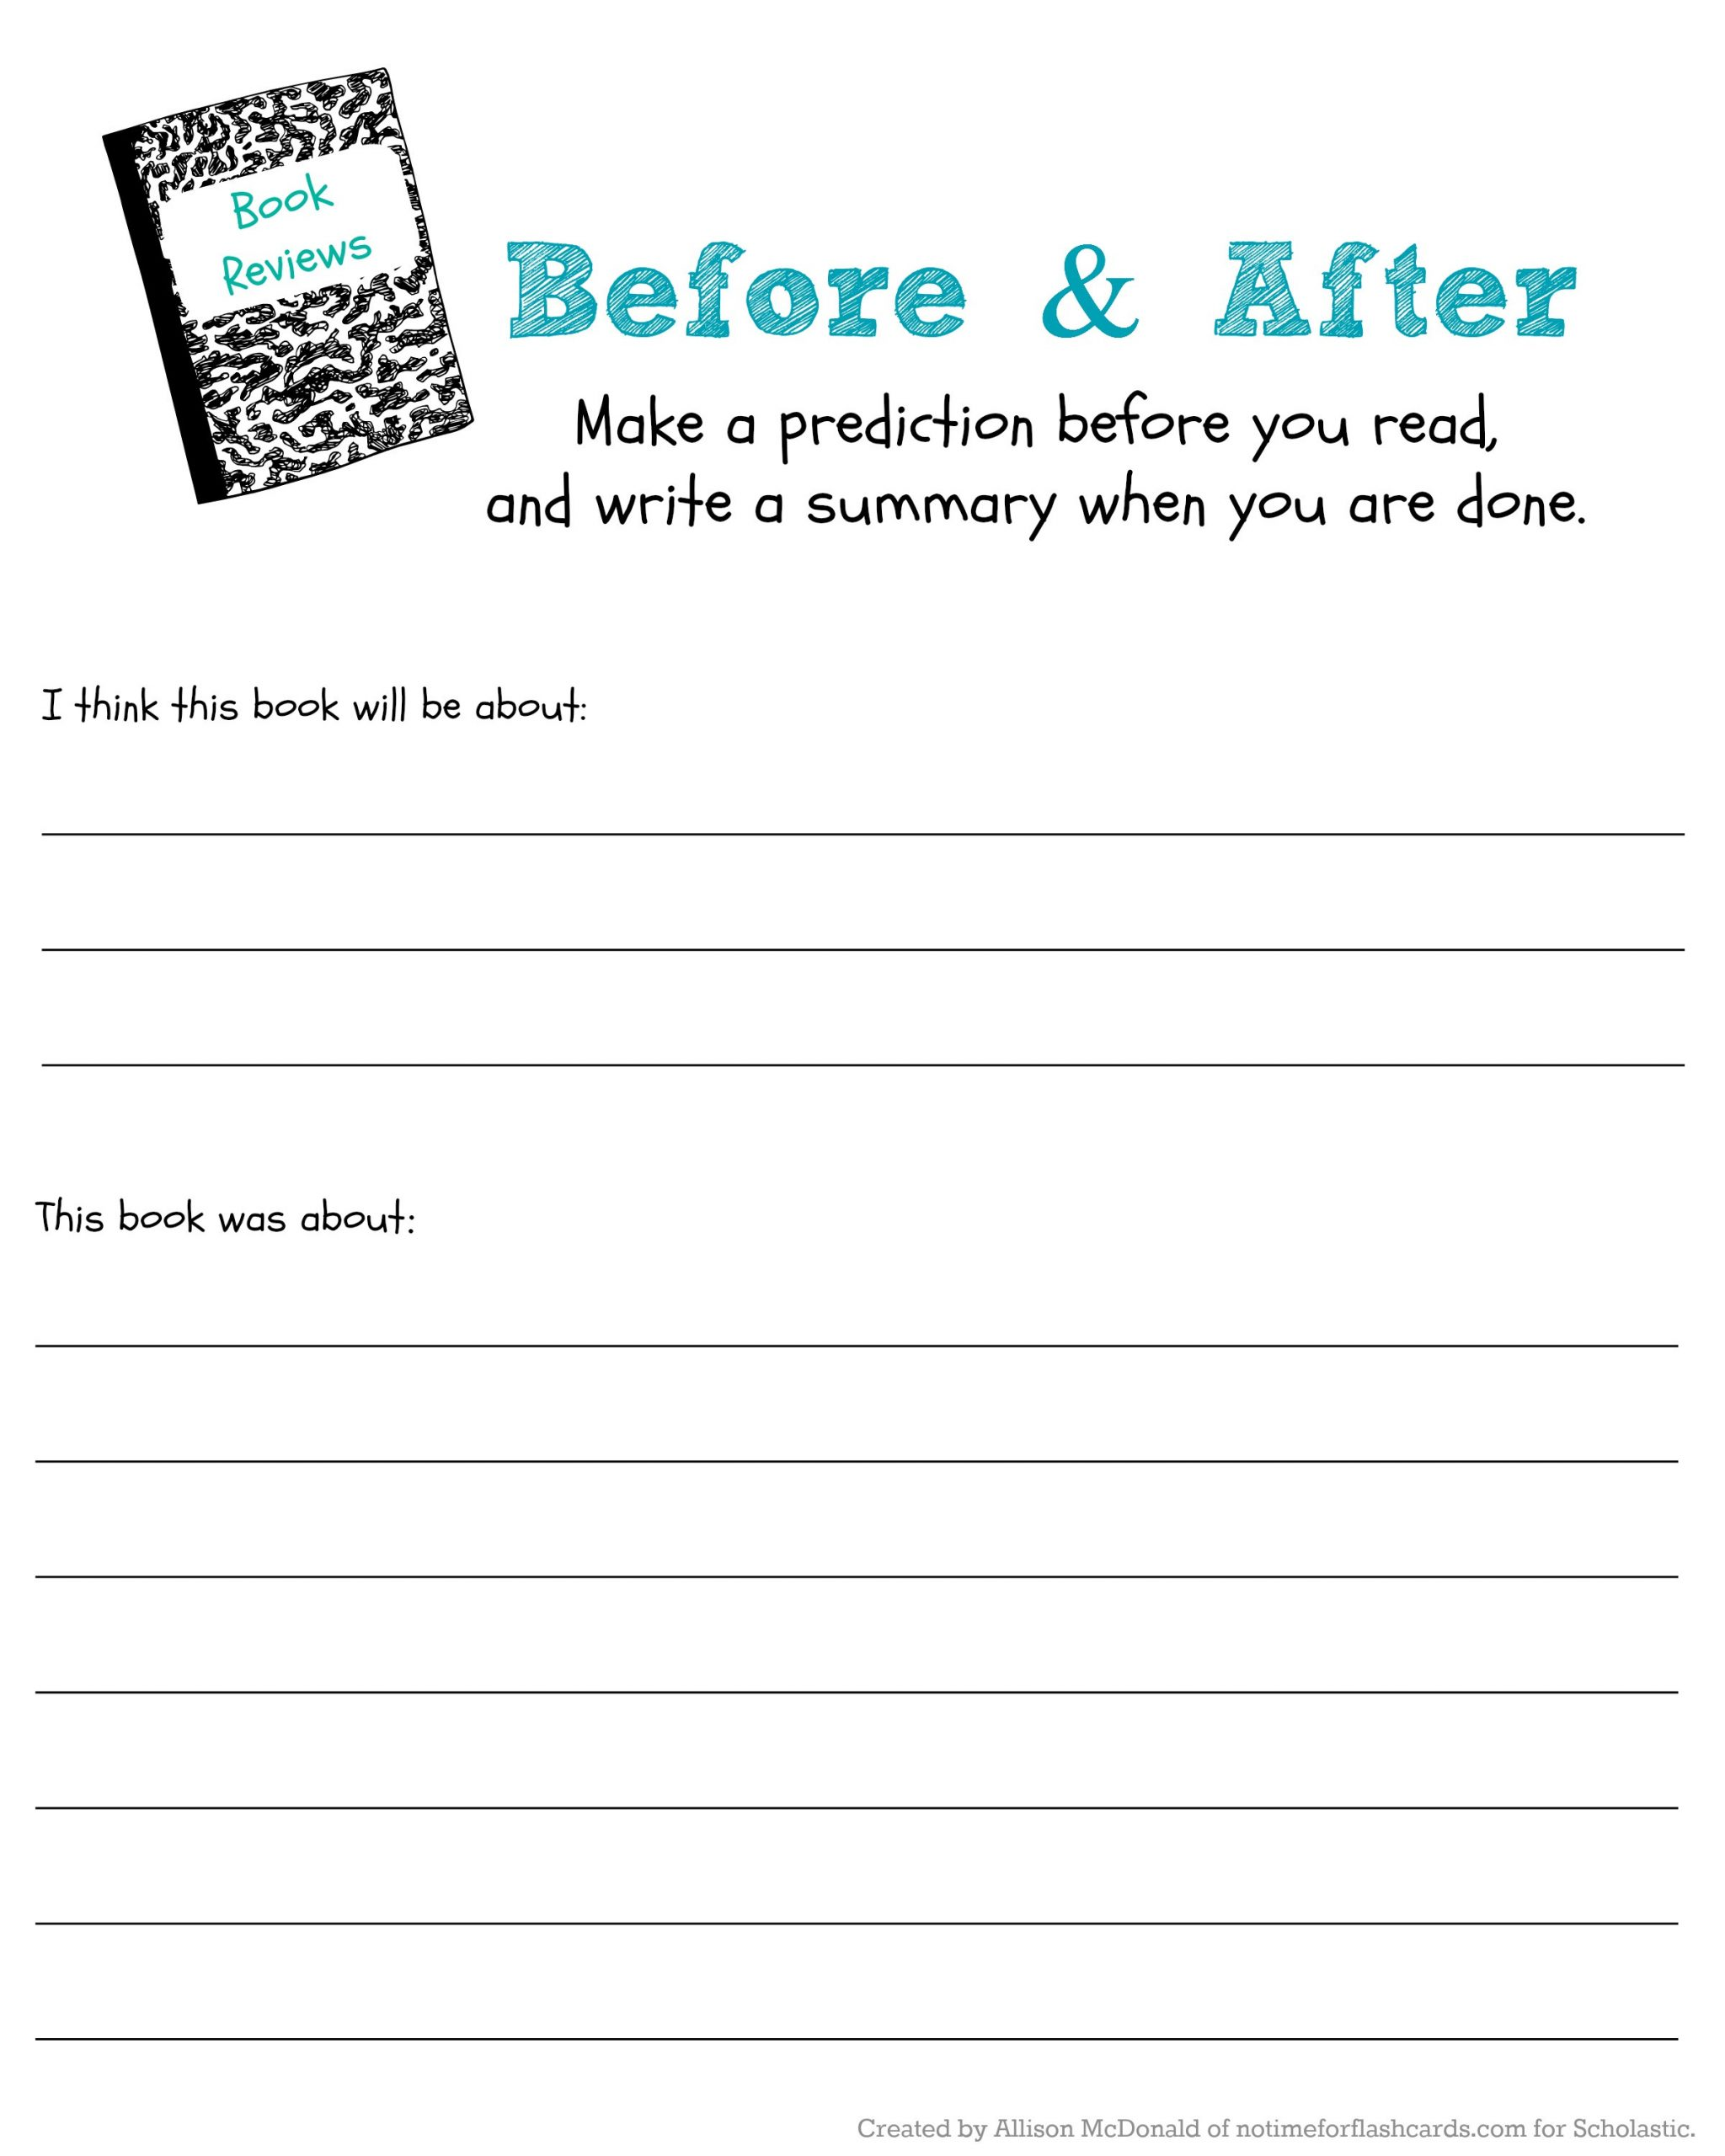 Predictions Worksheets 1st Grade Judge A Book by Its Cover to Predict & Read